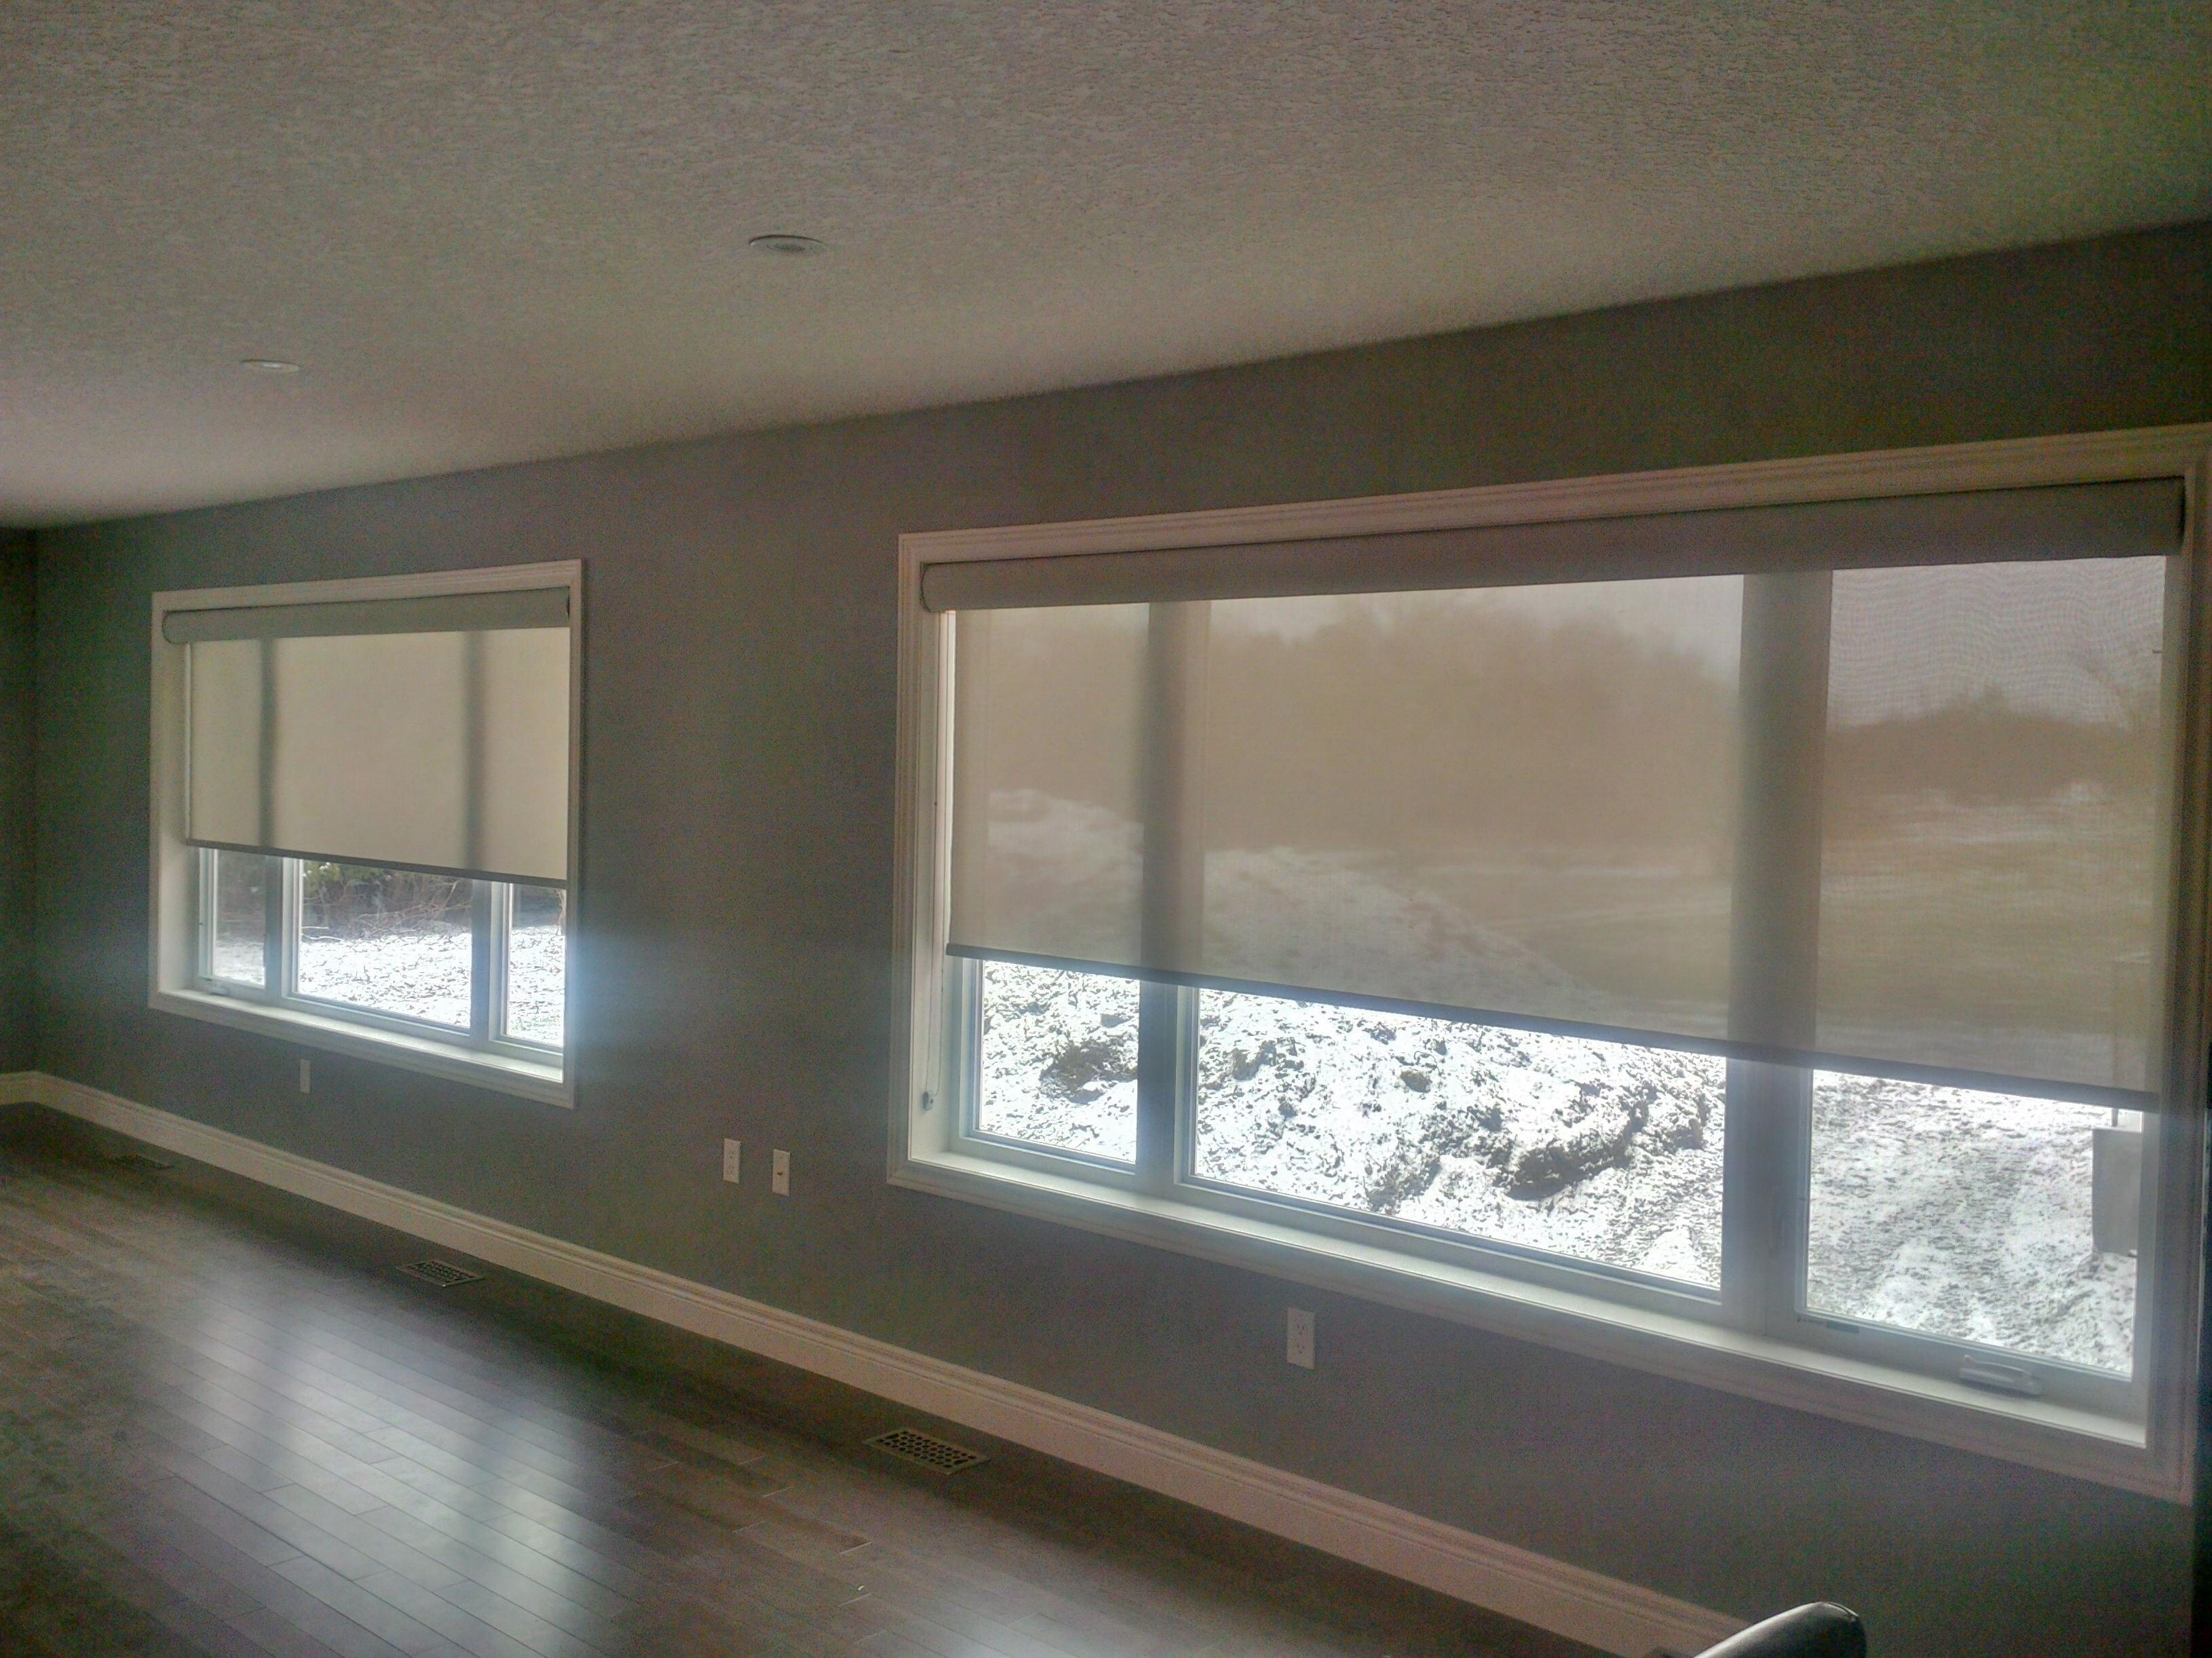 Budget Blinds à Waterloo: Before you decide that your large window needs to be broken up in to multiple shades or blinds, make sure you call Budget Blinds! This client didn't really want to have 3 shades in each of the windows pictured, but were told they were going to have to. We were able to install a single shade in each window so that the customer now has the simplicity in both appearance and operation that she wanted.